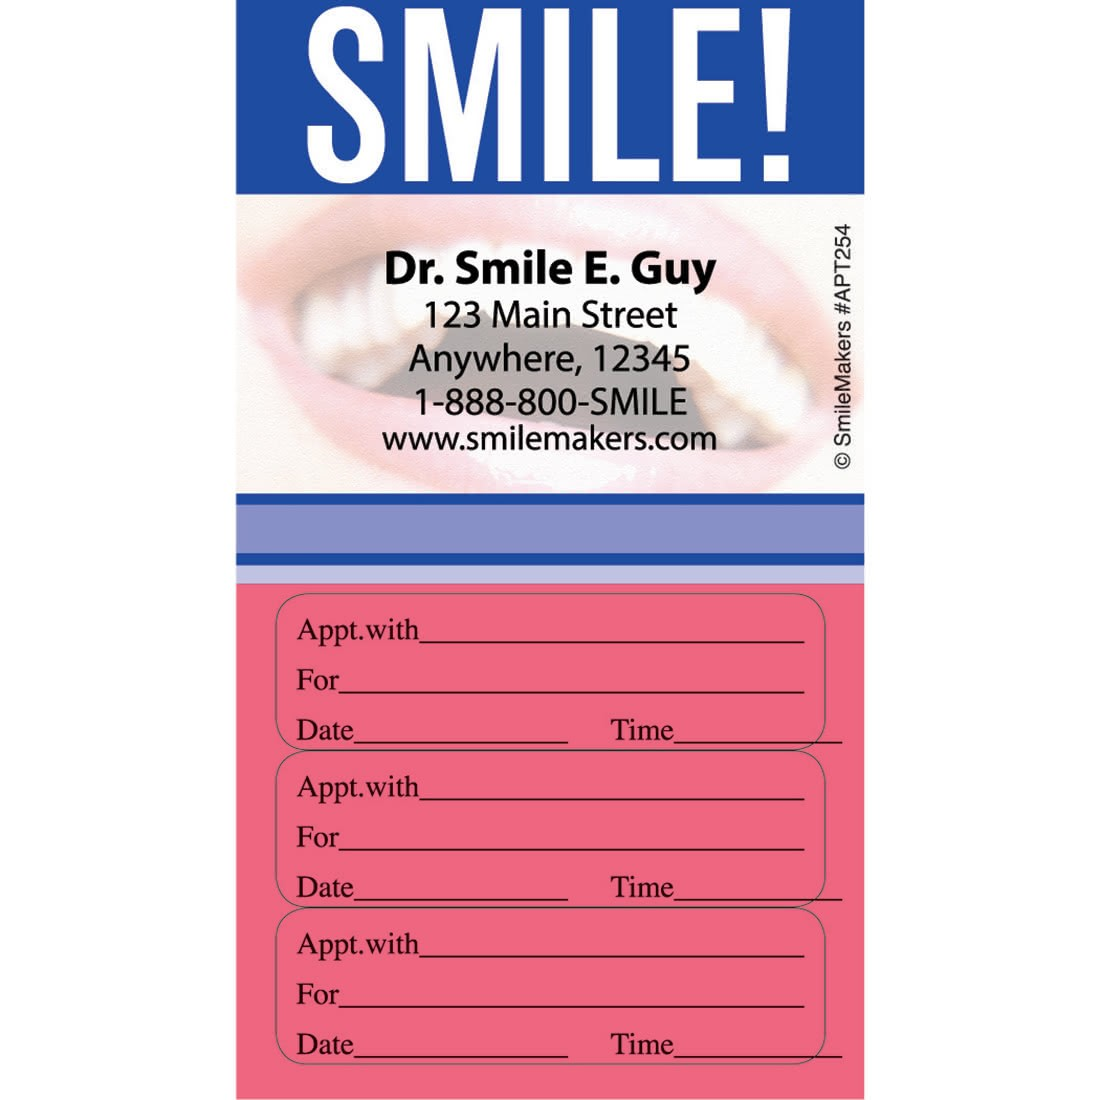 Custom Smile Three Sticker Appointment Cards [image]